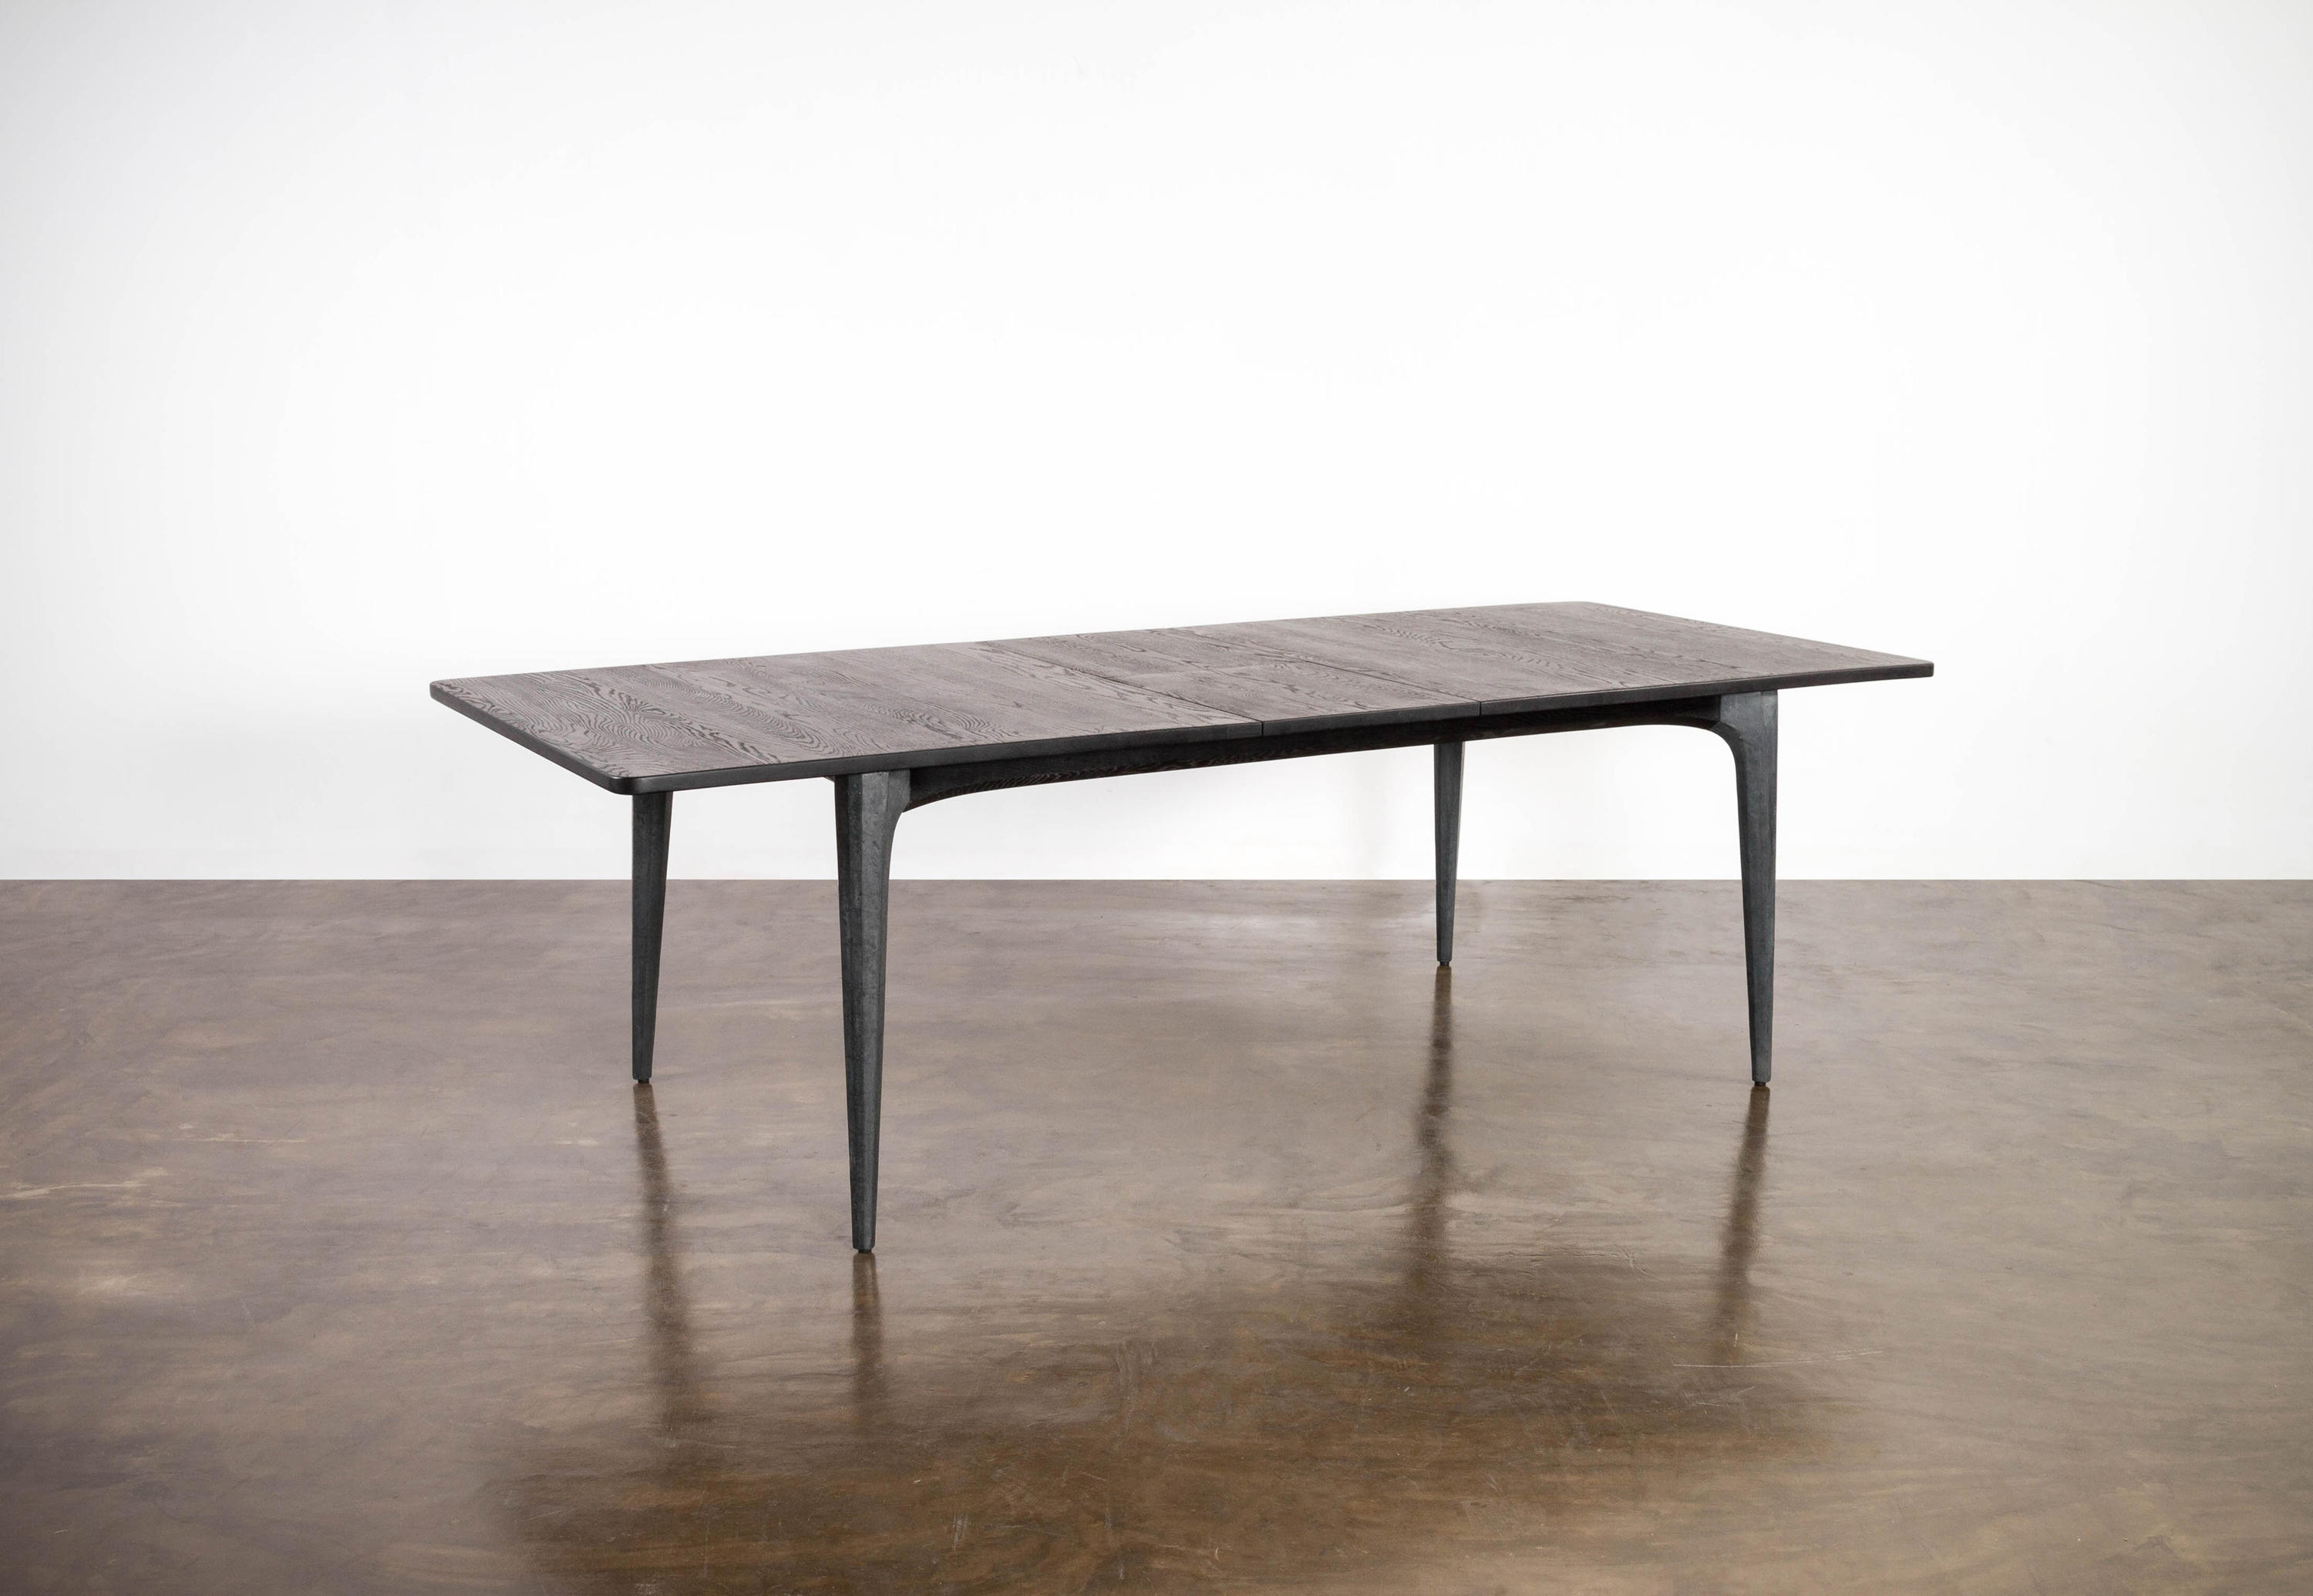 Salk Expanding Dining Table By District Eight | Dining Tables